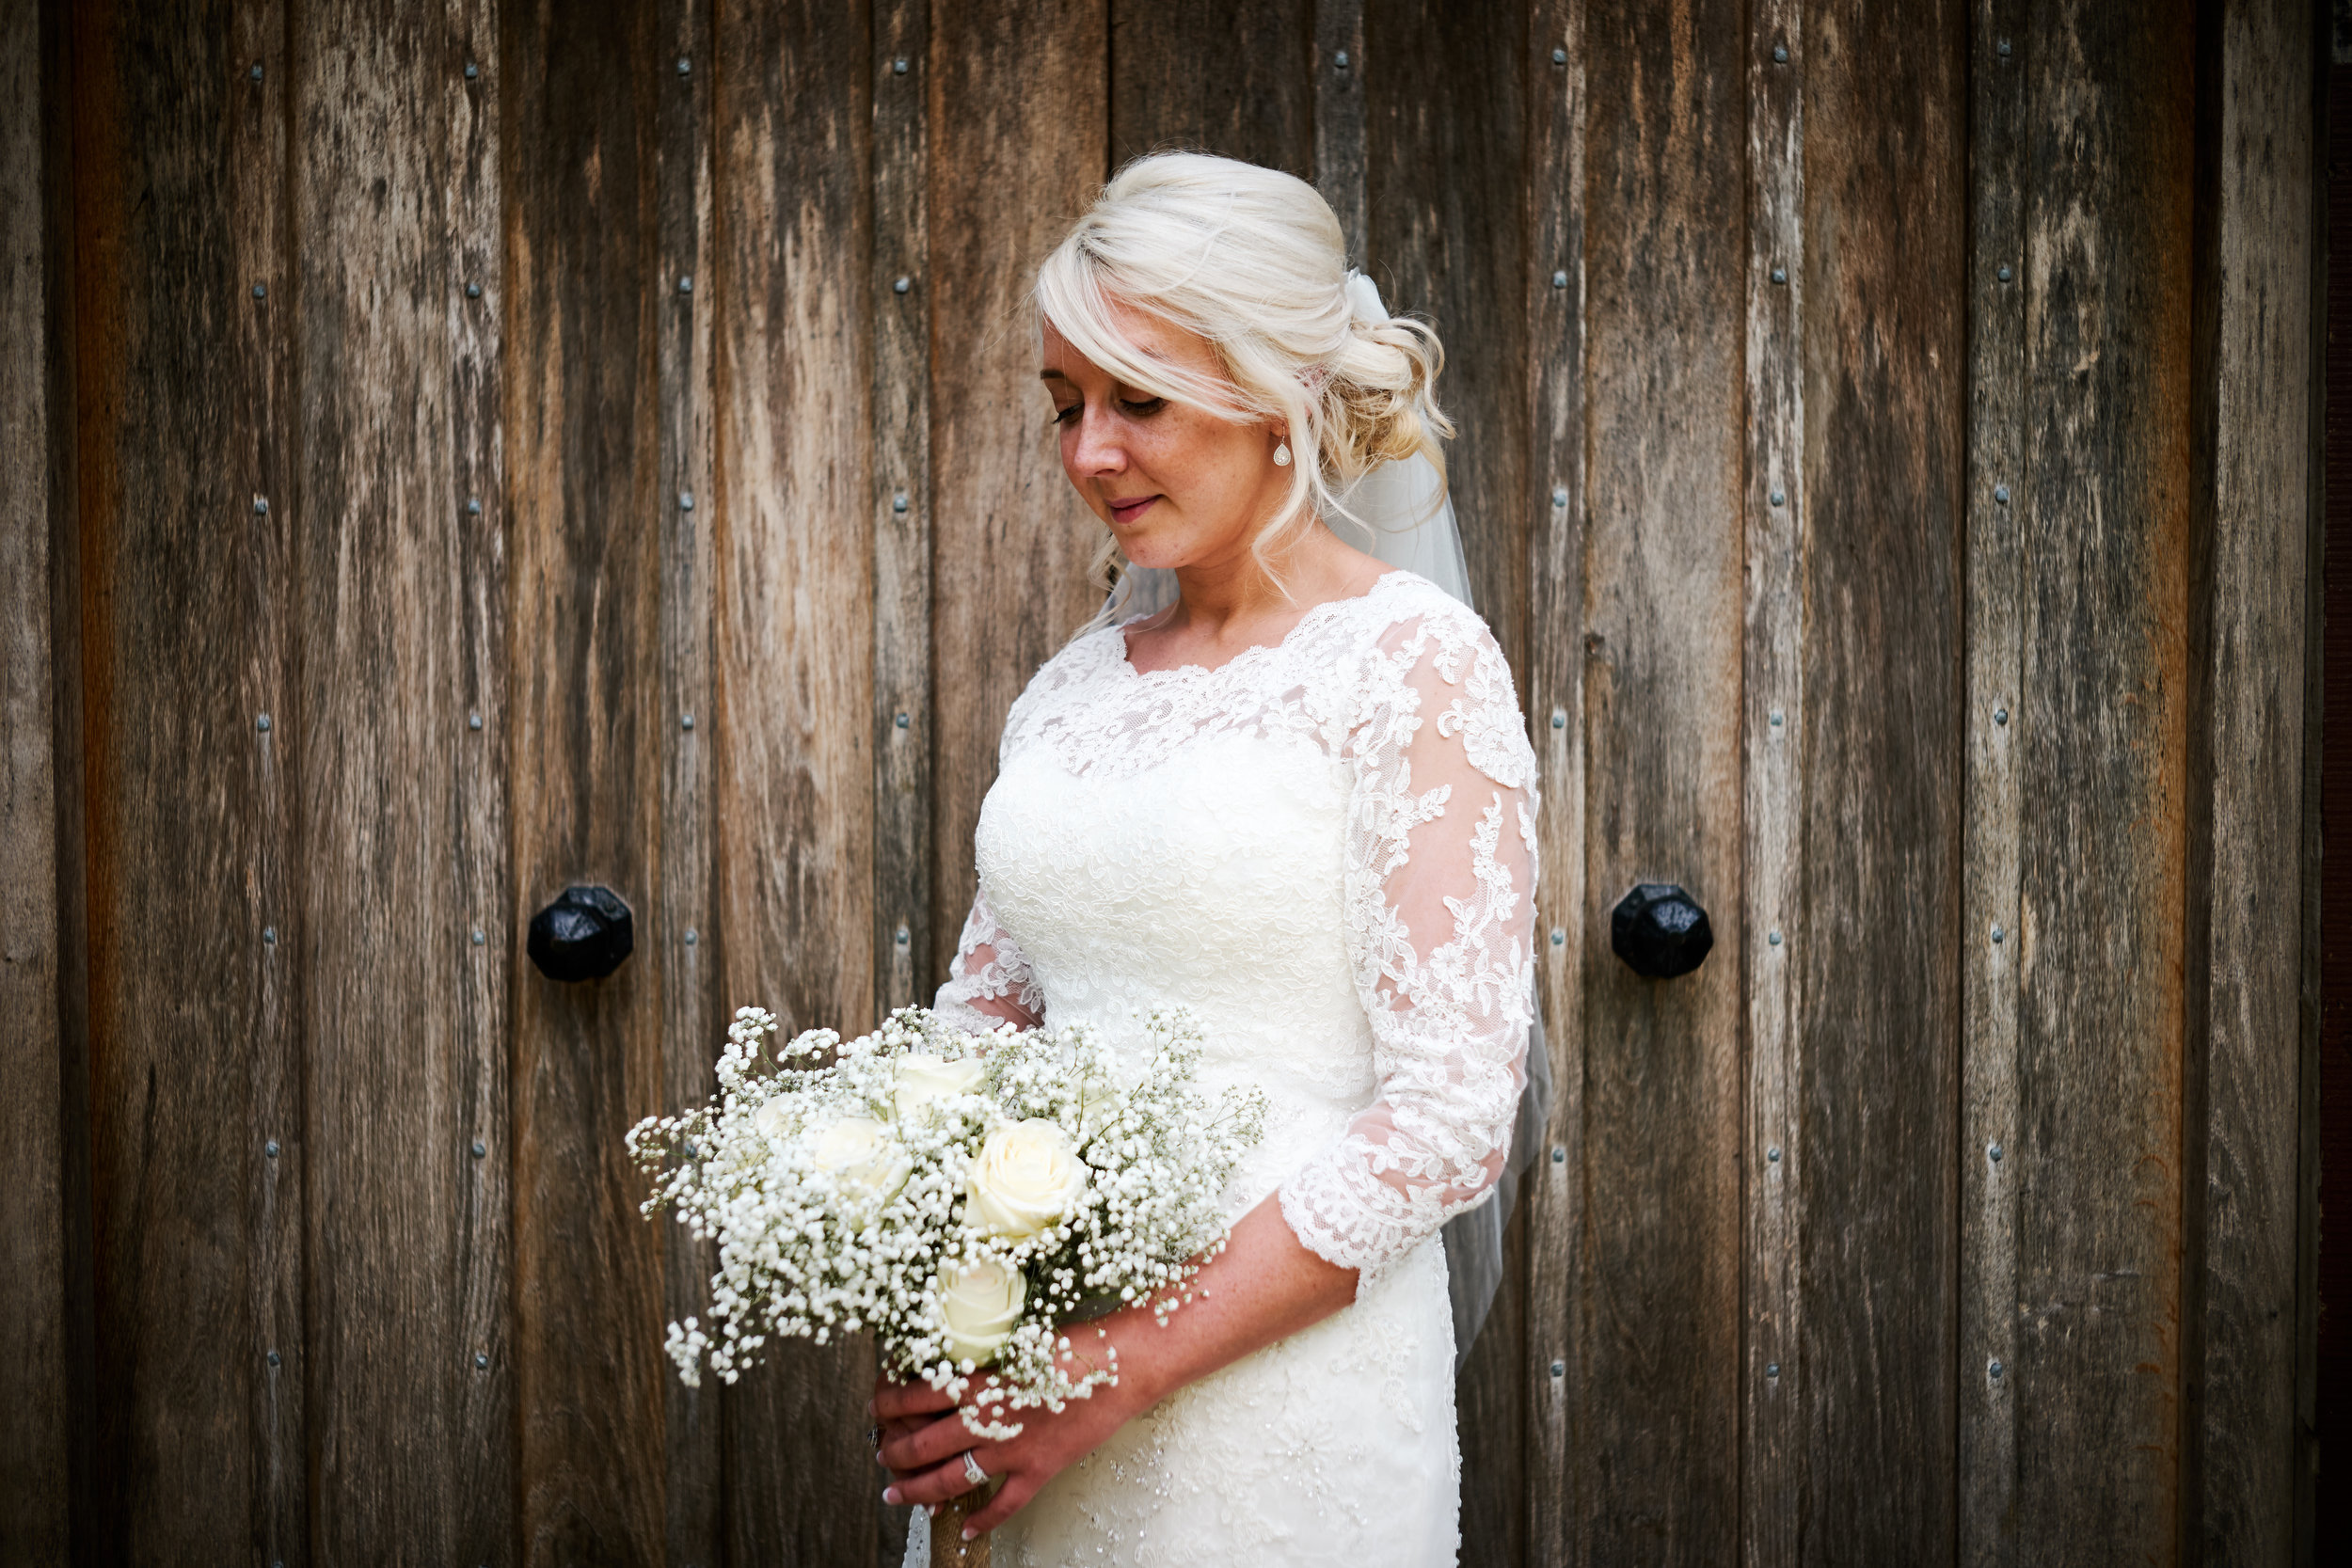 Carly and Jaz wedding at Bel and the Dragon Reading on 16 June 2016.